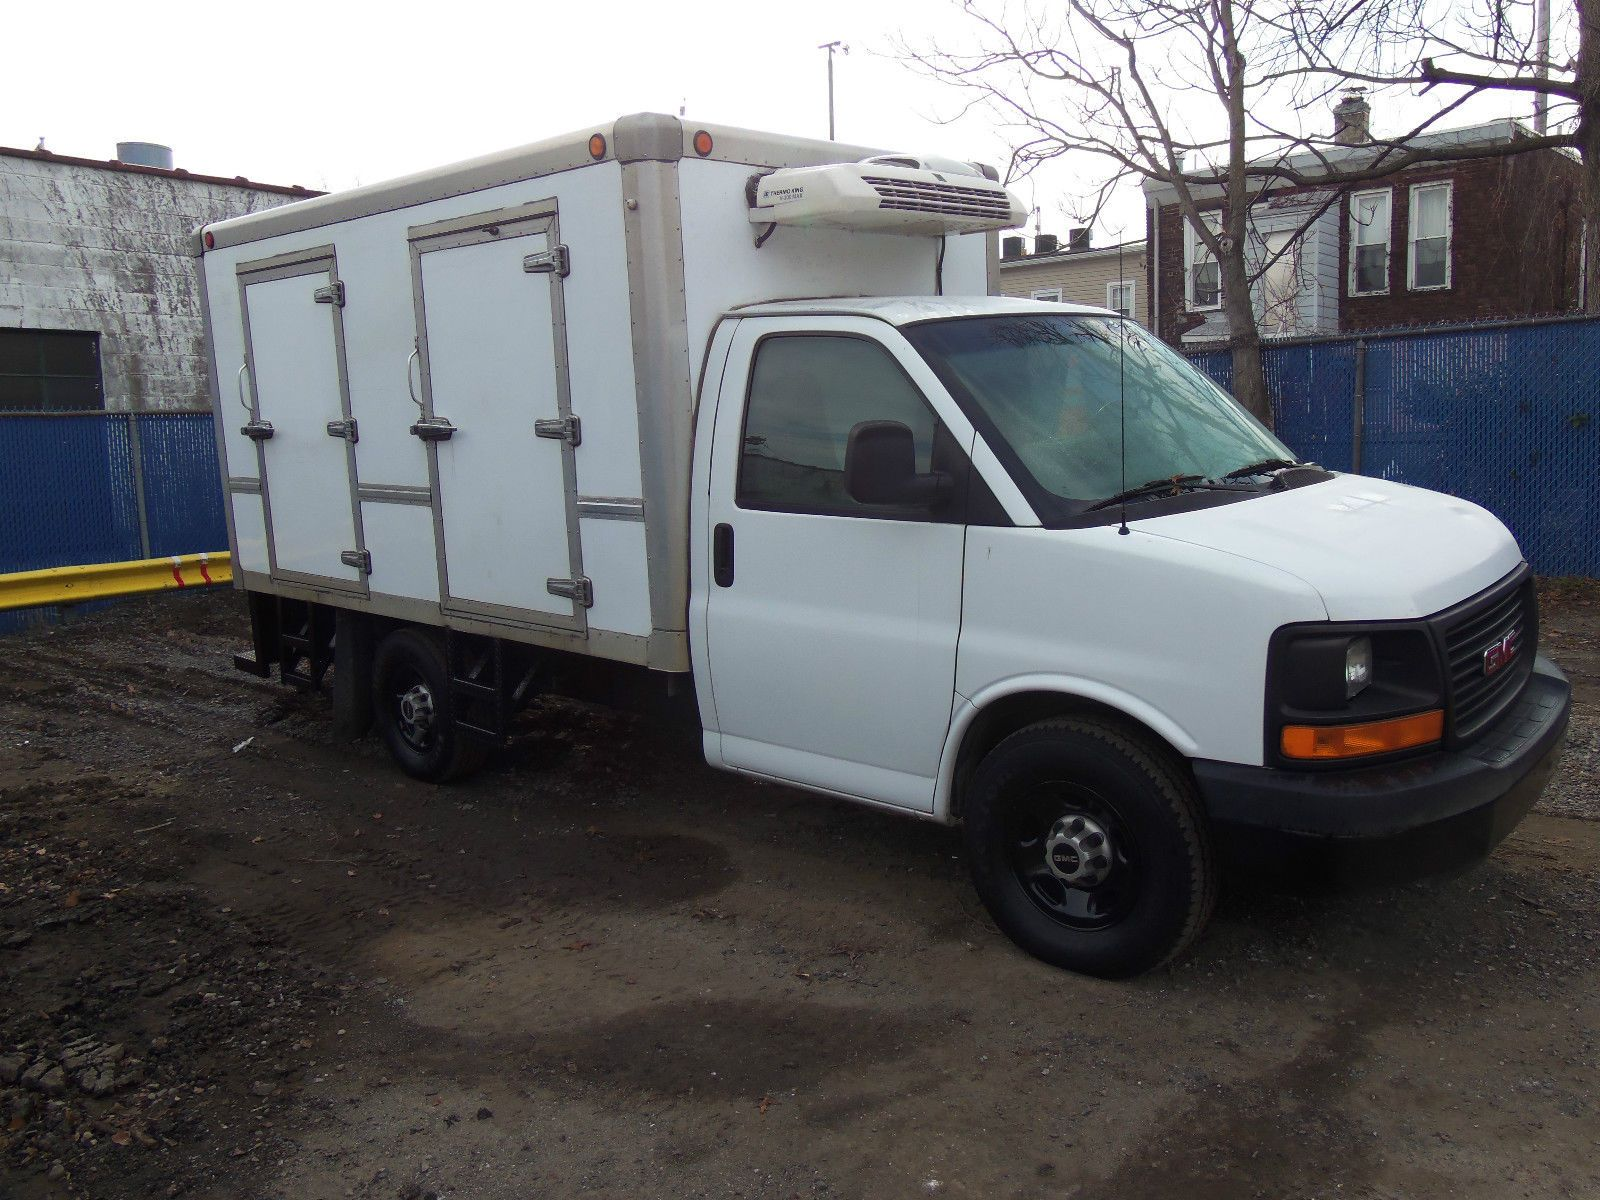 2009 Gmc Thermo King Reefer Body For Sale Gmc Trucks For Sale Thermos